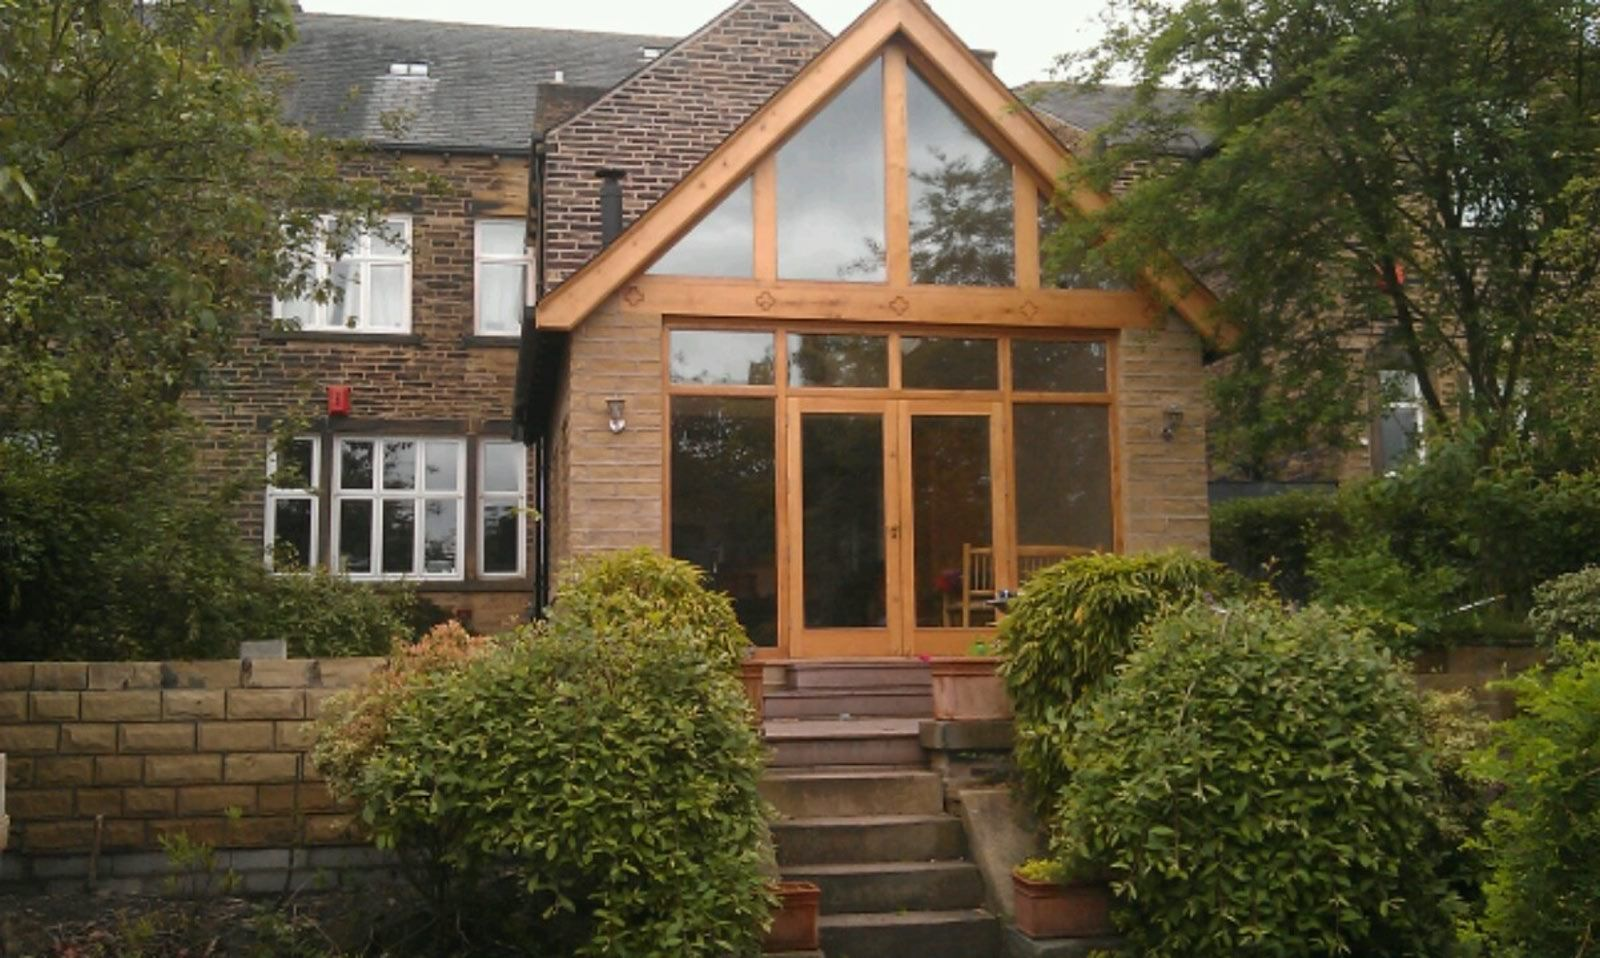 Gable End Window | Extension | Pinterest | Window, Extensions and ...